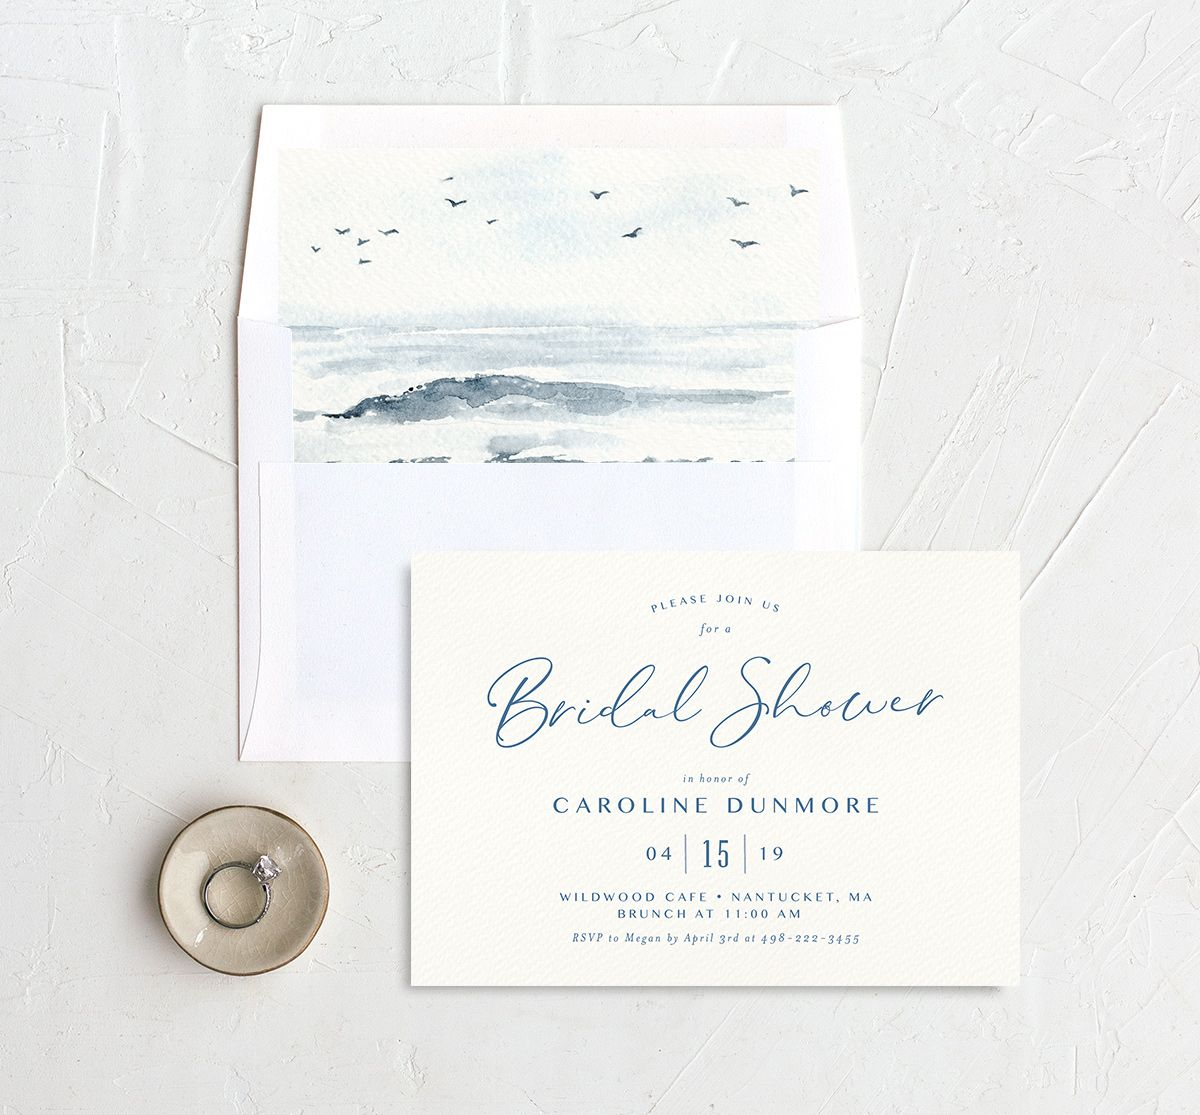 Coastal Love bridal shower invite with liner in blue